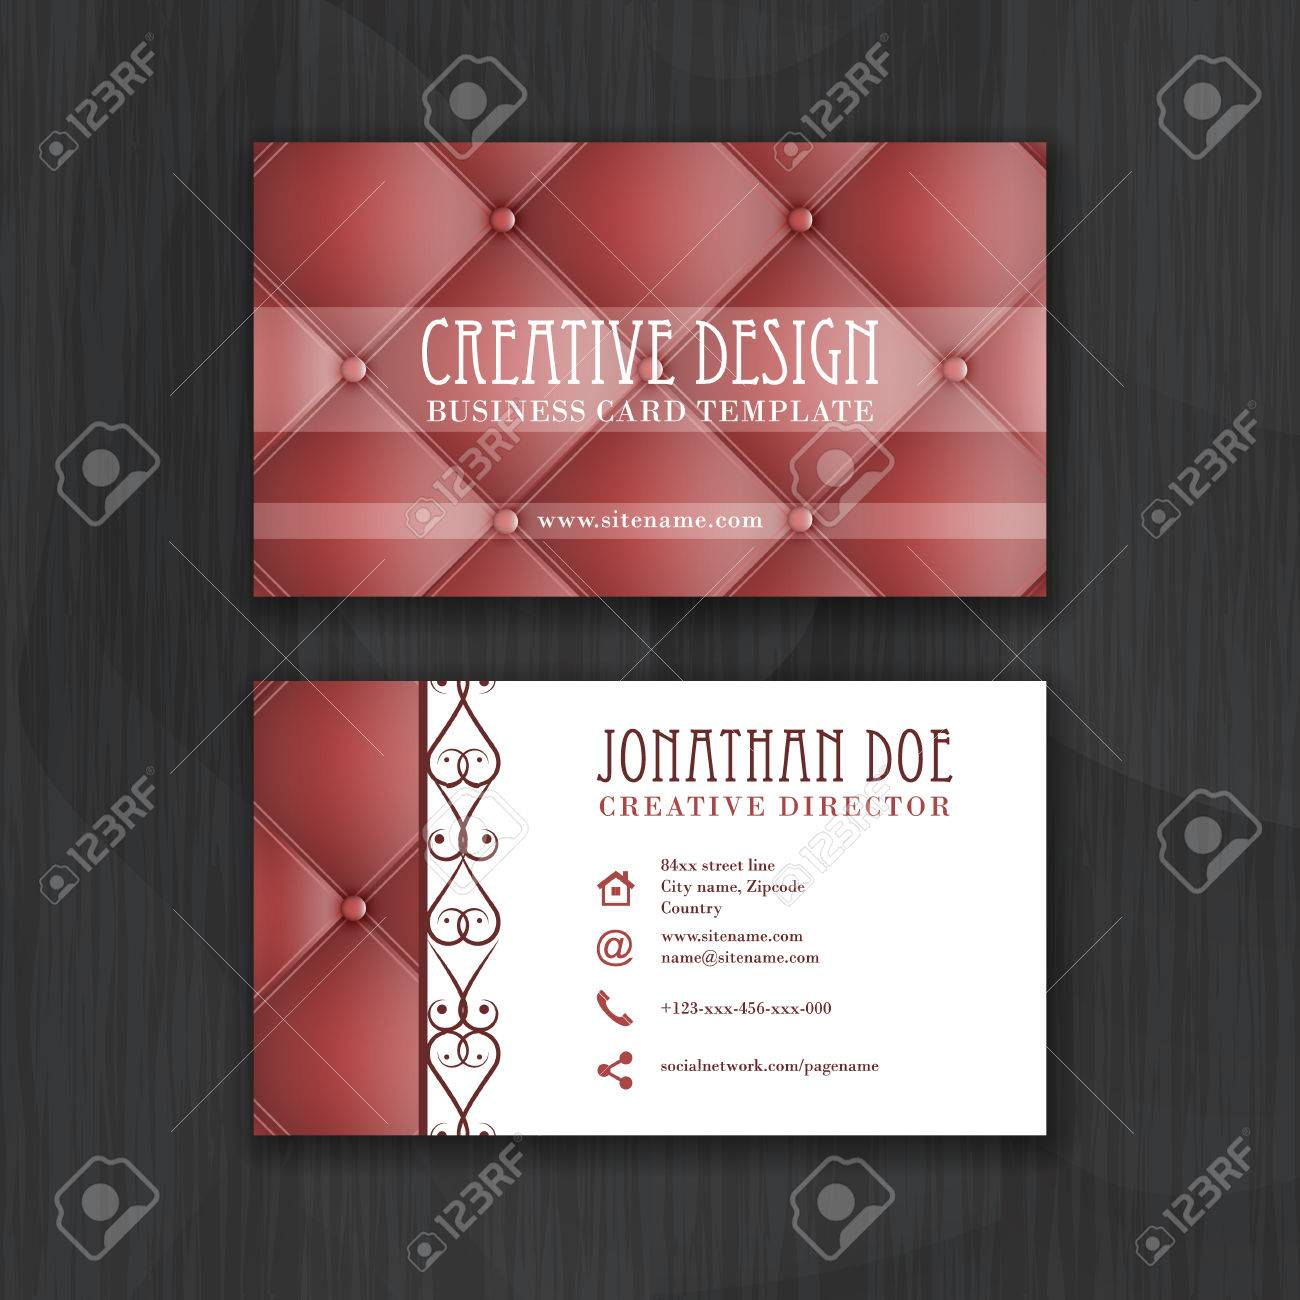 Creative business card template with leather texture. Design..